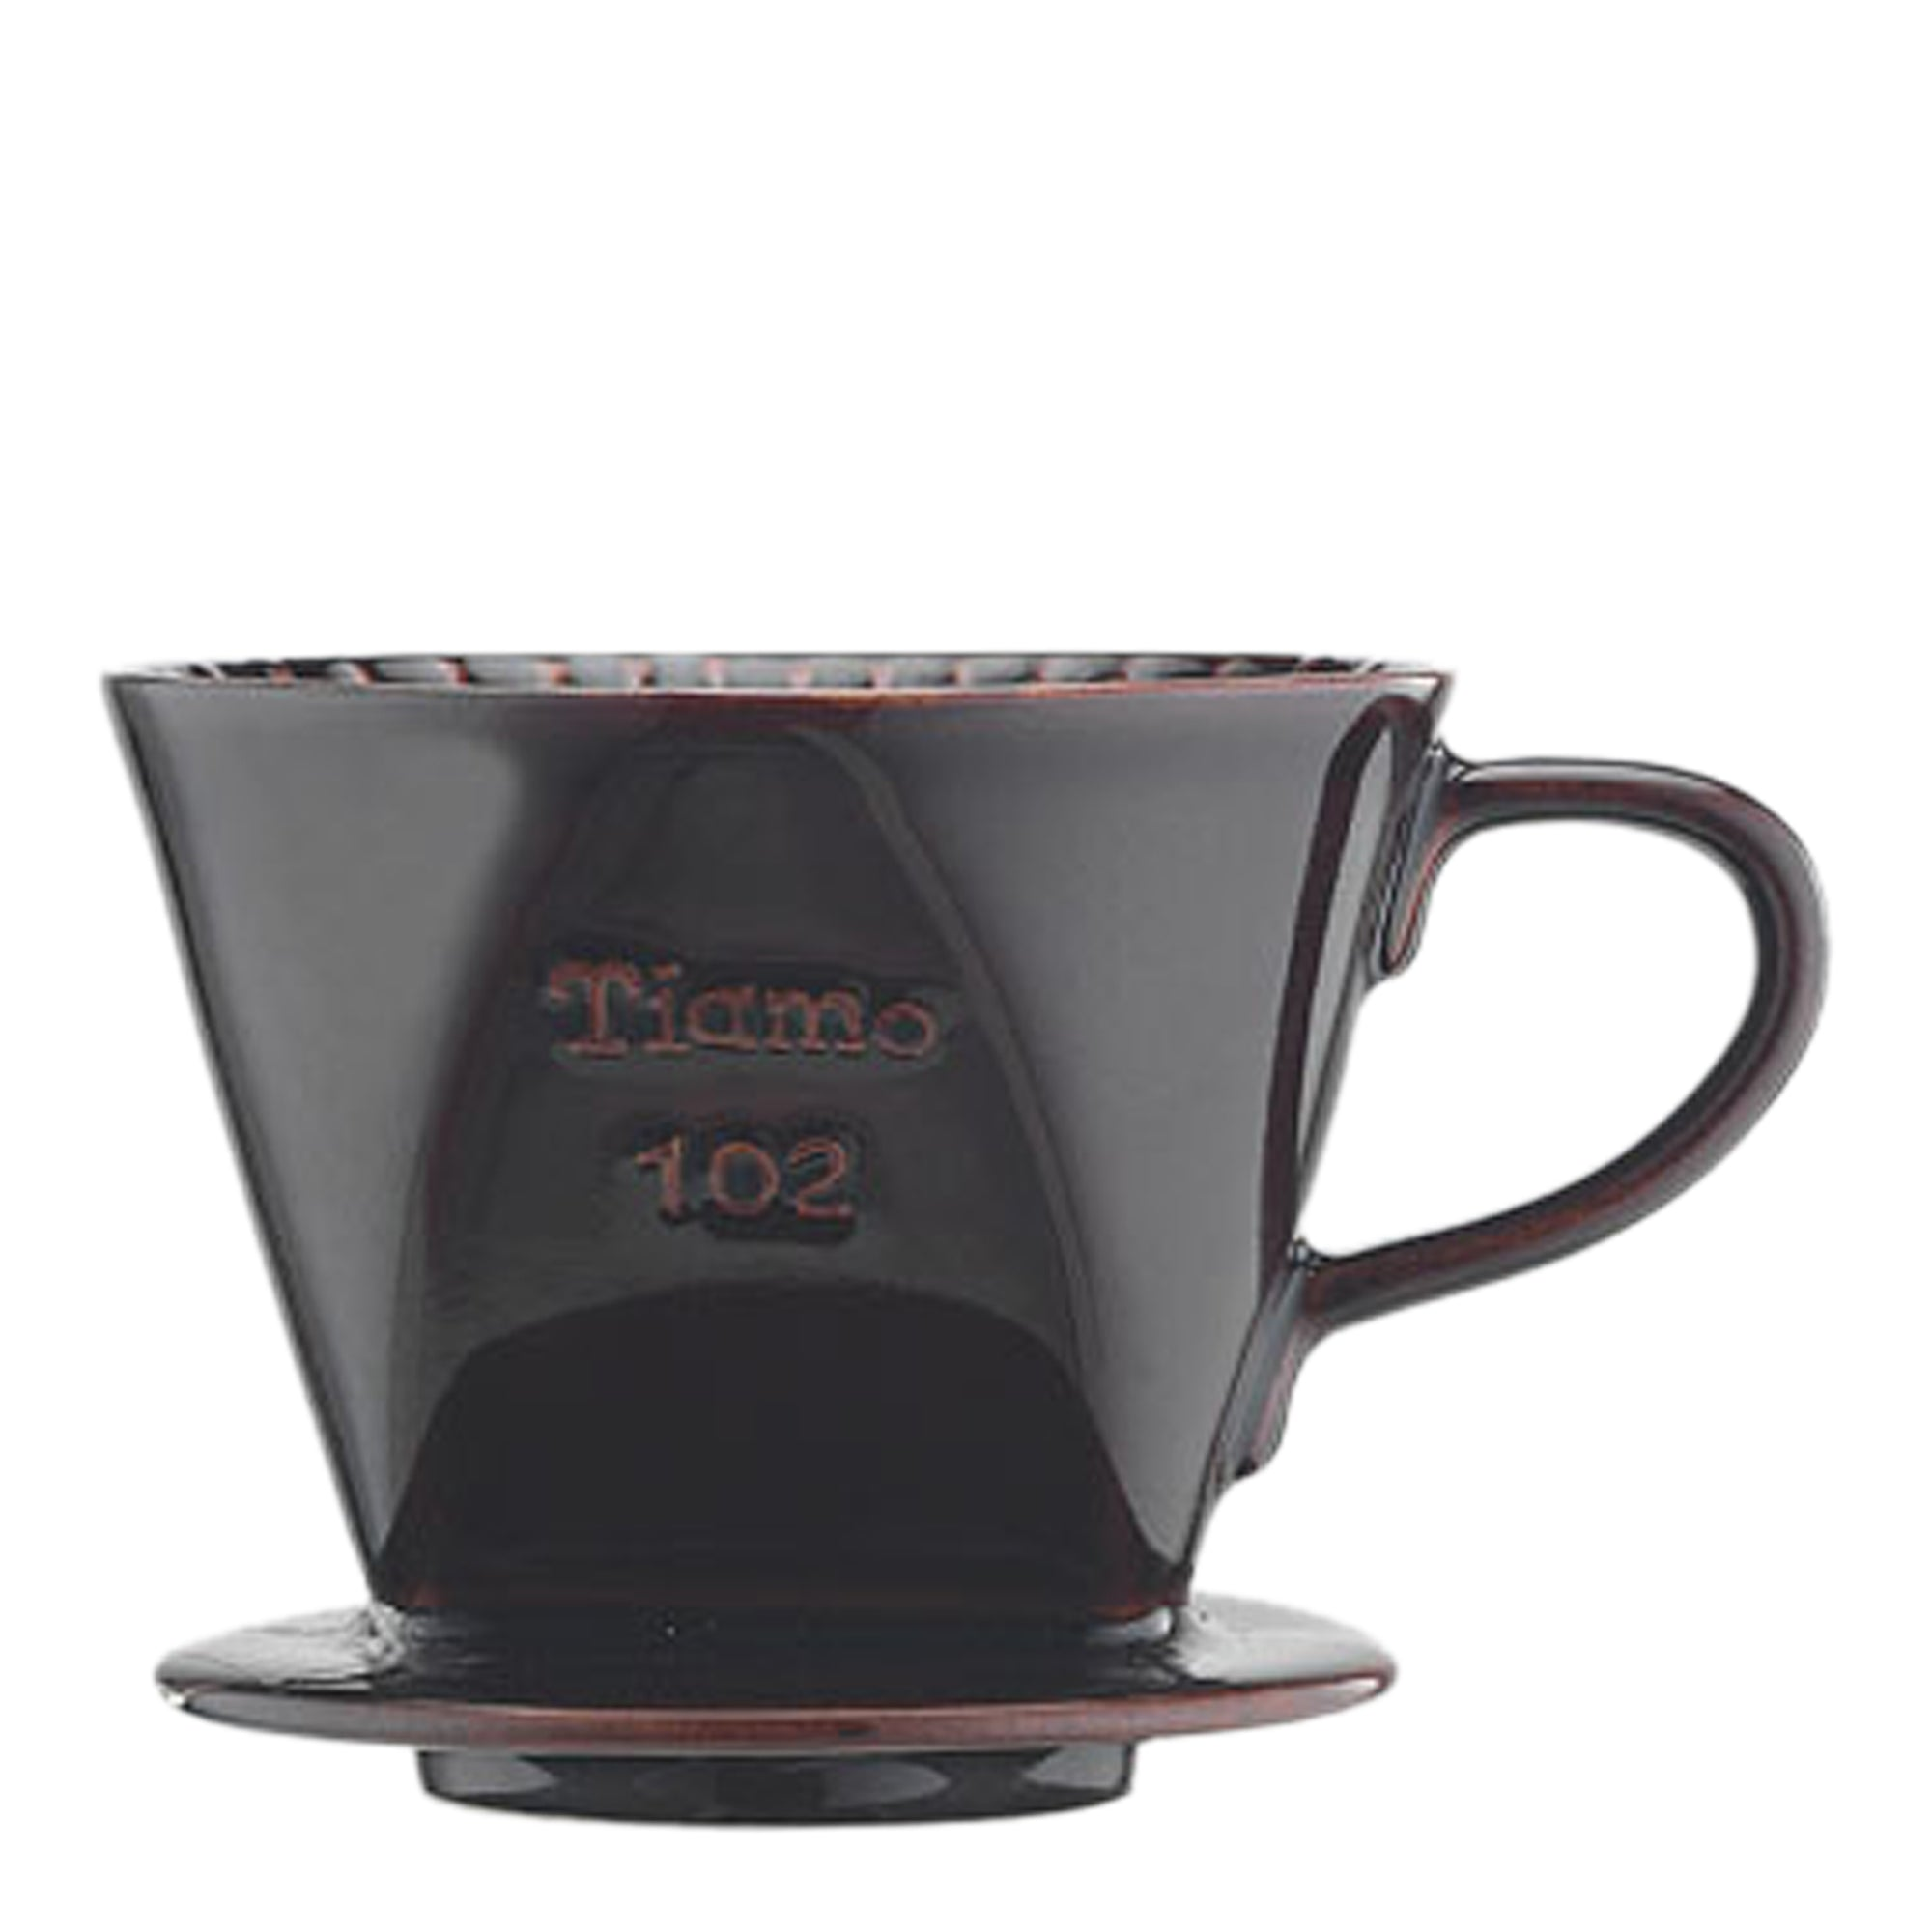 Tiamo Ceramic Filter 102 - Espresso Gear